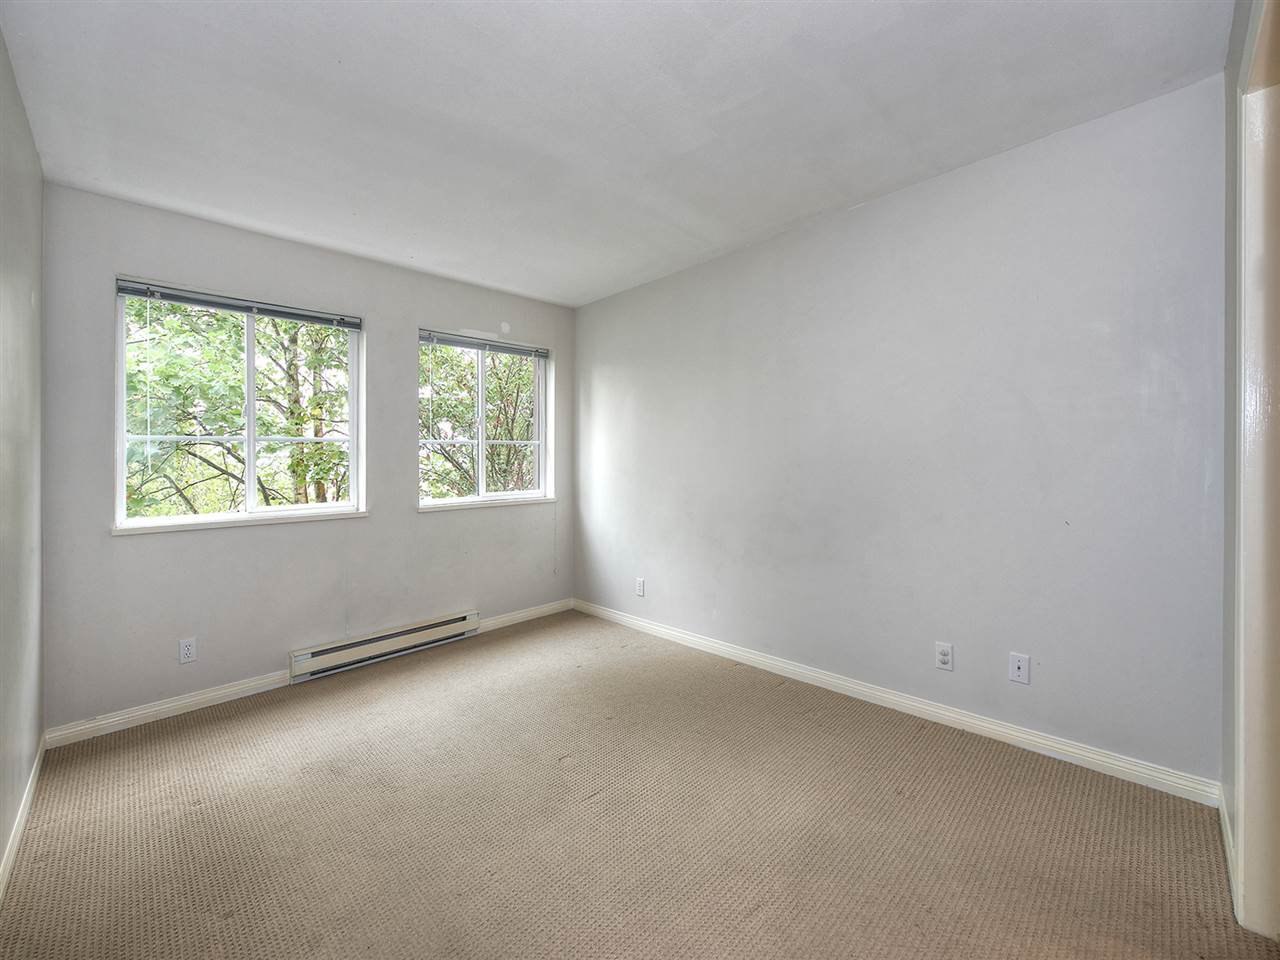 Photo 11: Photos: 203 4768 53 STREET in Delta: Delta Manor Condo for sale (Ladner)  : MLS®# R2202745